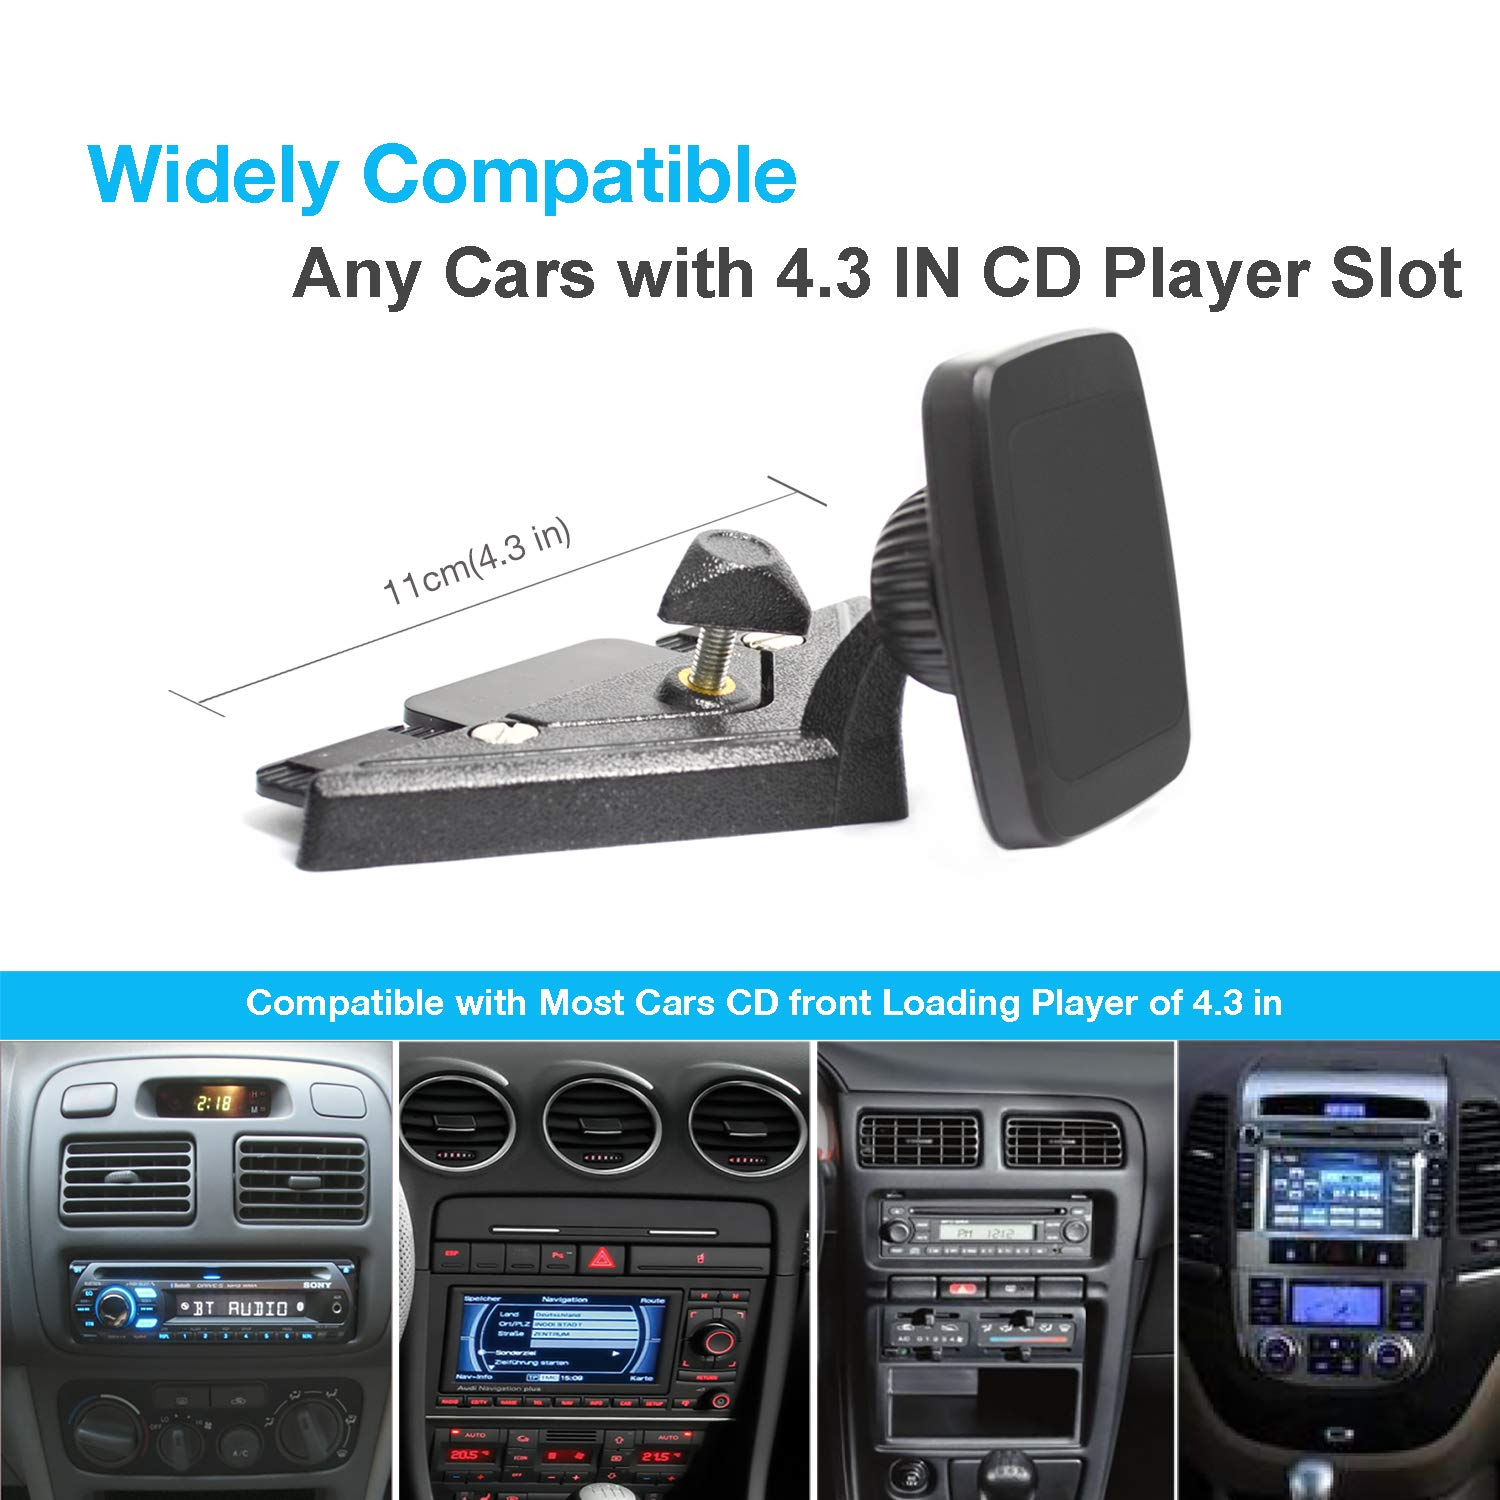 iPad Car CD Mount,Tablet Holder for Car,CD Player Tablet Mount,INNOMAX Universal Magnetic CD Player Tablet Mount for Tablets from 5\